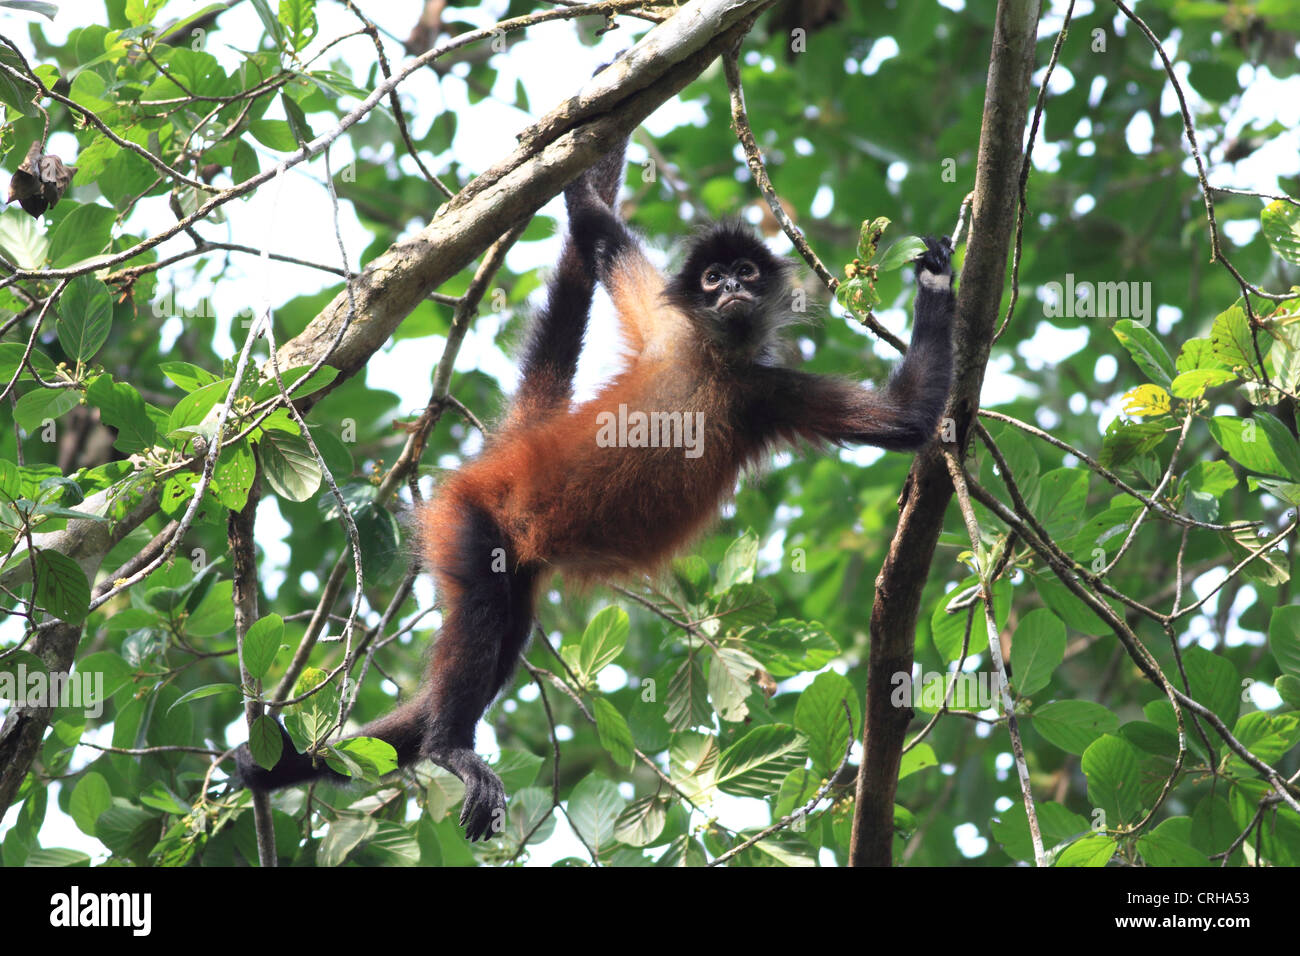 Central American Spider Monkey (Ateles geoffroyi). Corcovado National Park, Osa Peninsula, Costa Rica. March 2012. Stock Photo